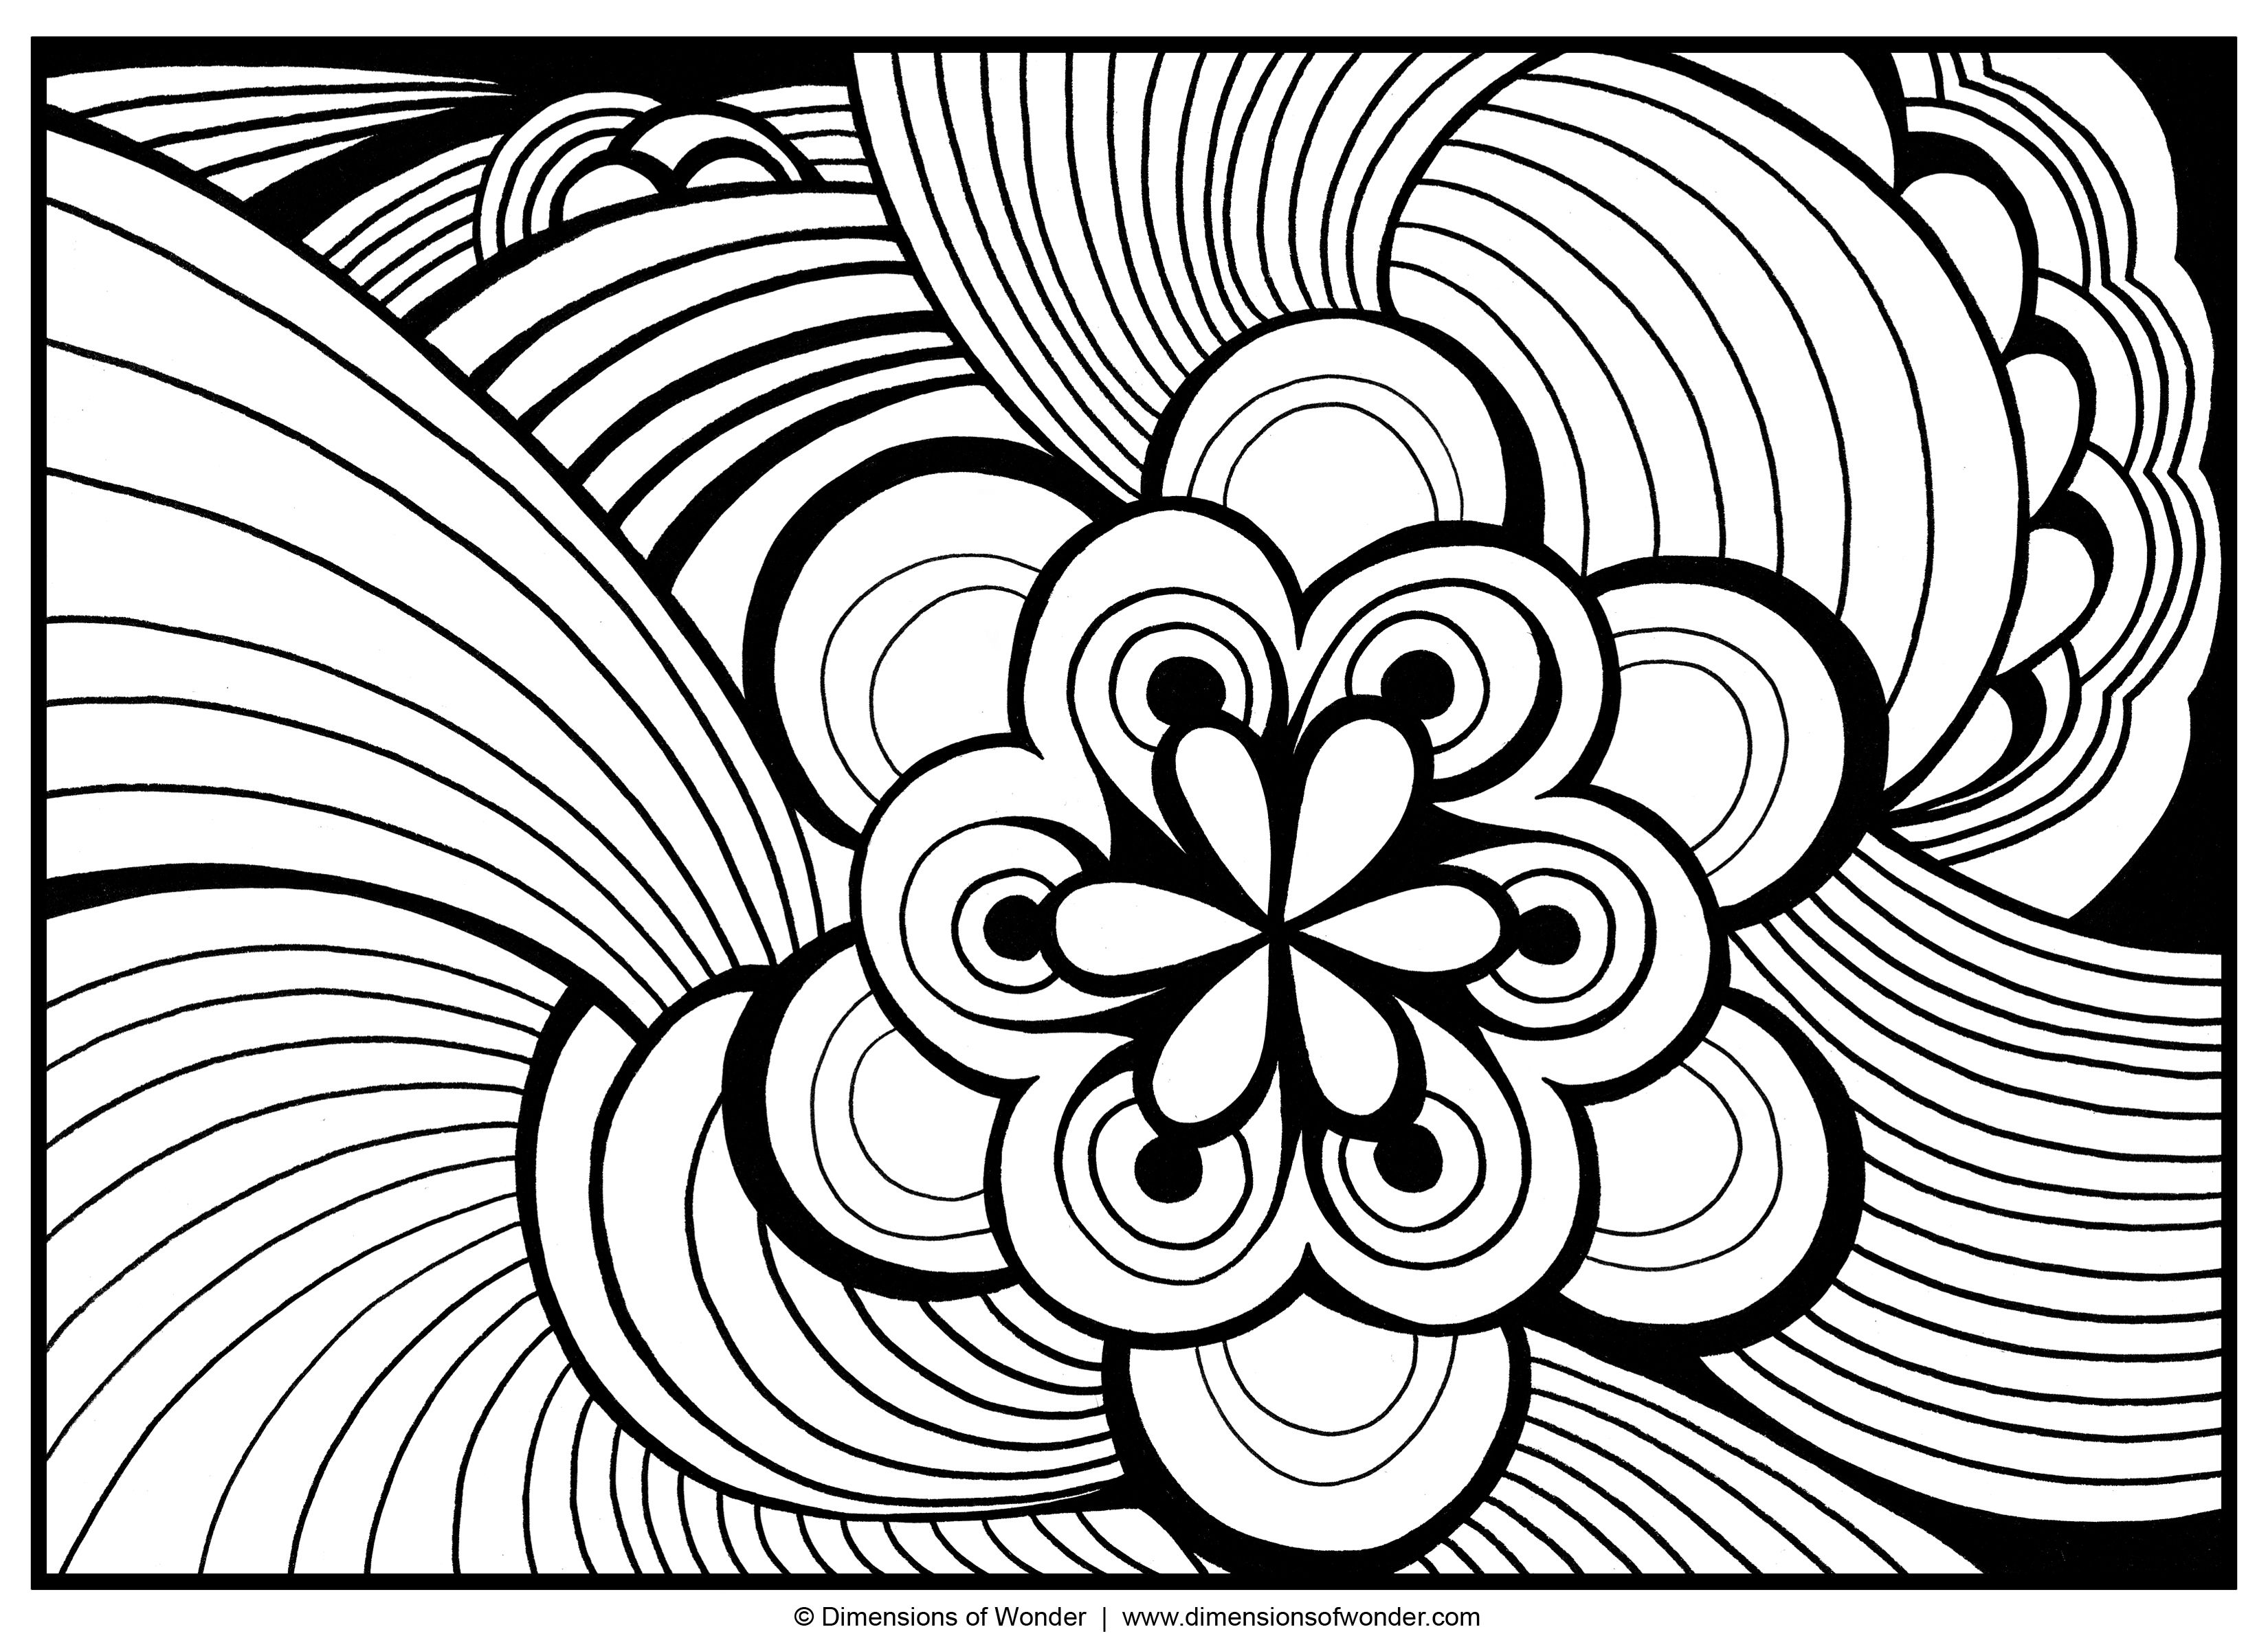 abstract flower coloring pages abstract coloring pages free printable momjunction coloring abstract flower pages